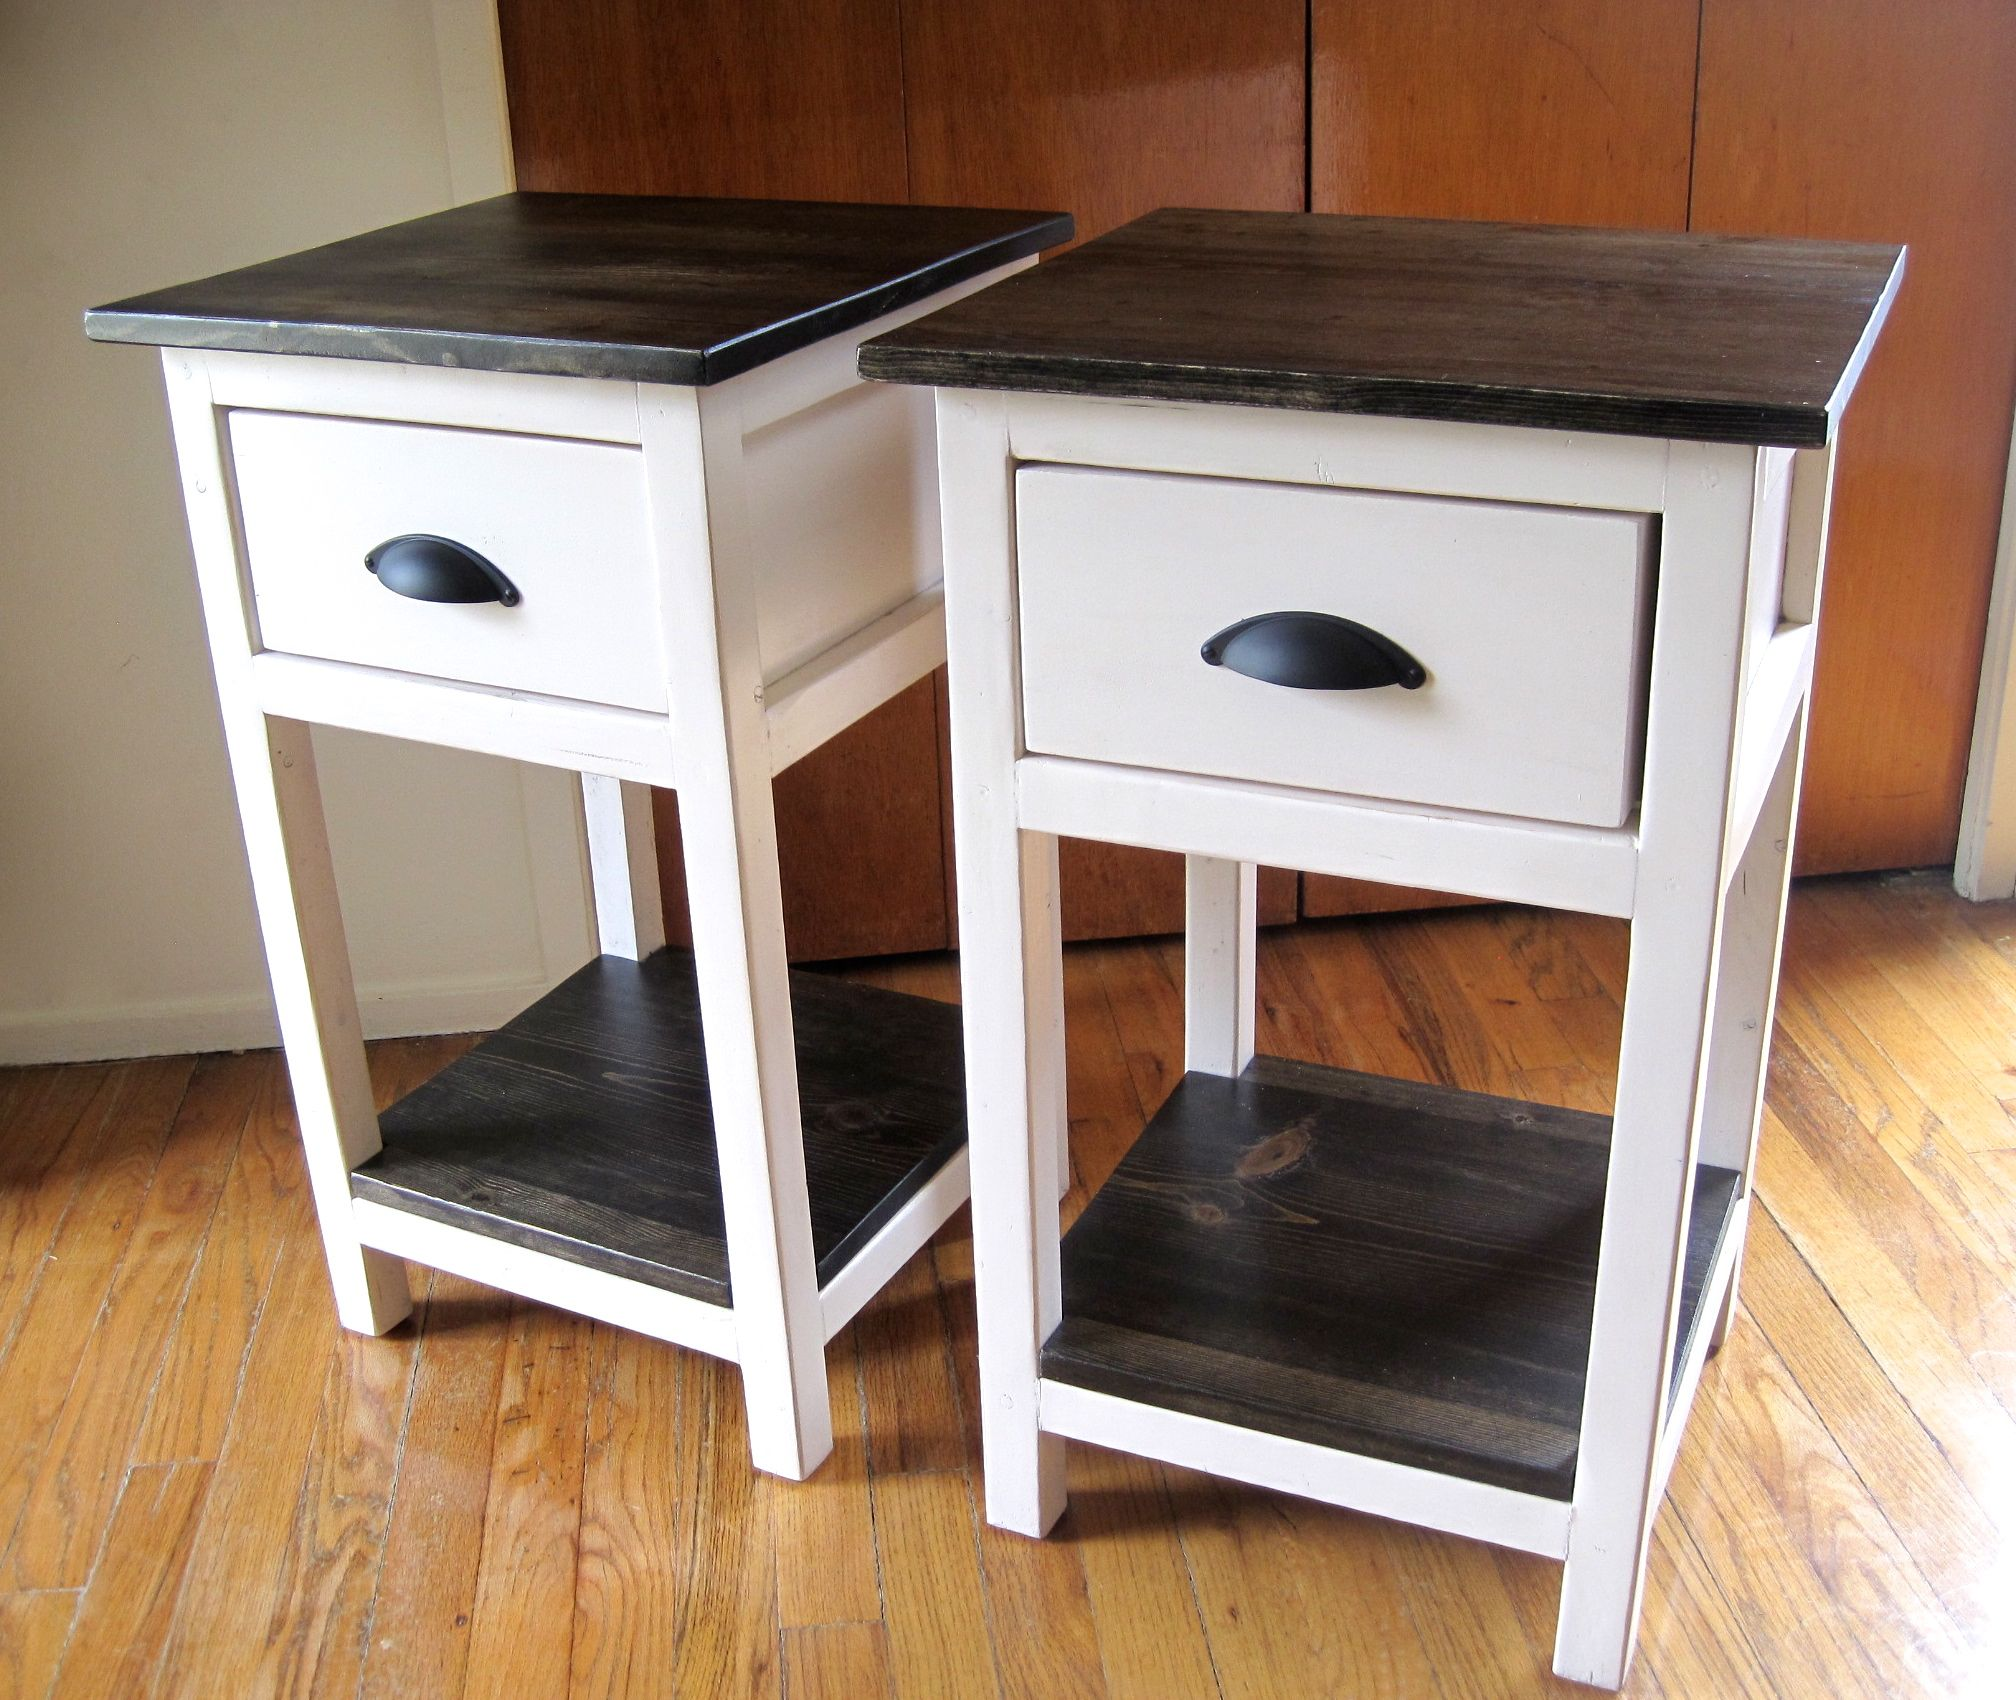 Ana white build a mini farmhouse bedside table plans How to build a farmhouse